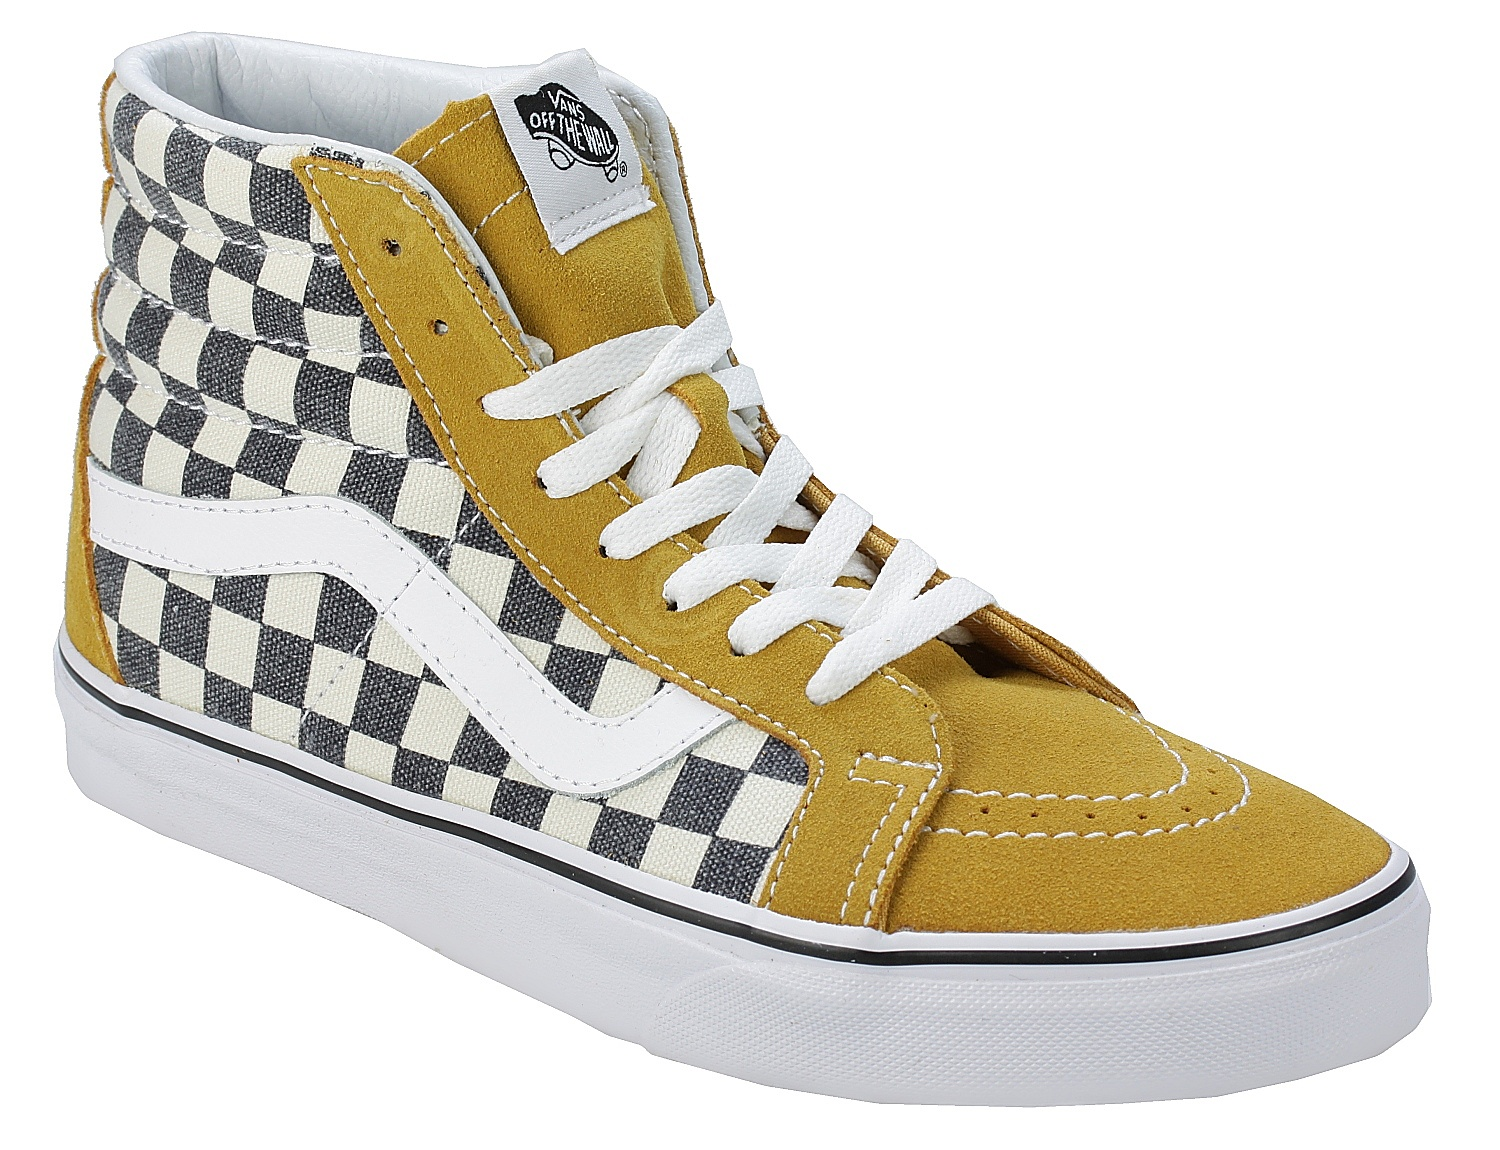 f657b5acd62b4e shoes Vans Sk8-Hi Reissue - Checkerboard Spruce Yellow Navy - Snowboard  shop